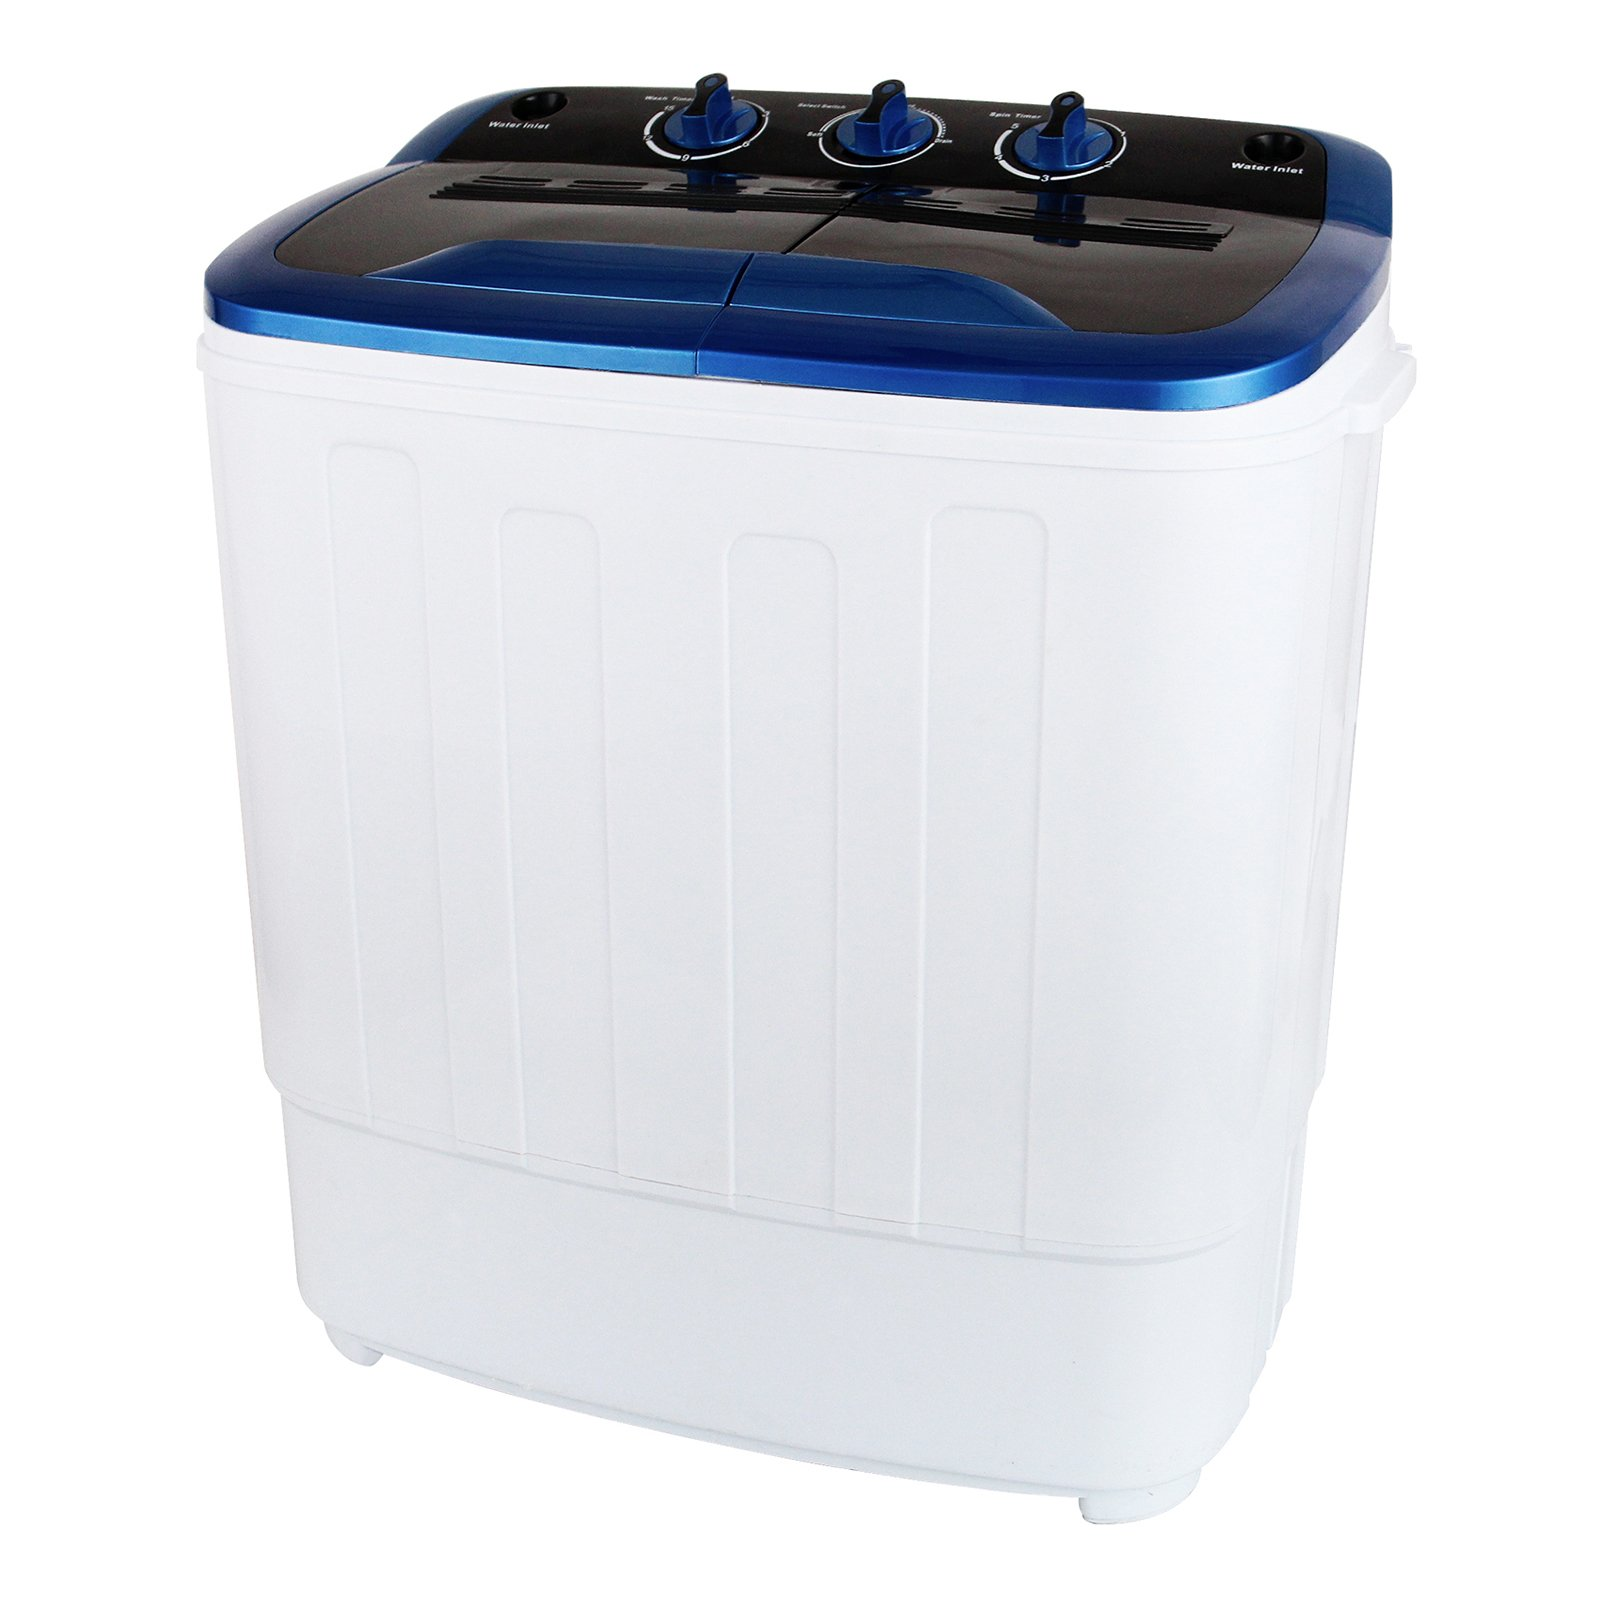 KUPPET 13Ibs Portable Mini Compact Twin Tub Washing Machine Washer Spin Dryer, Ideal for Dorms, Apartments, RVs, Camping etc, White & Blue